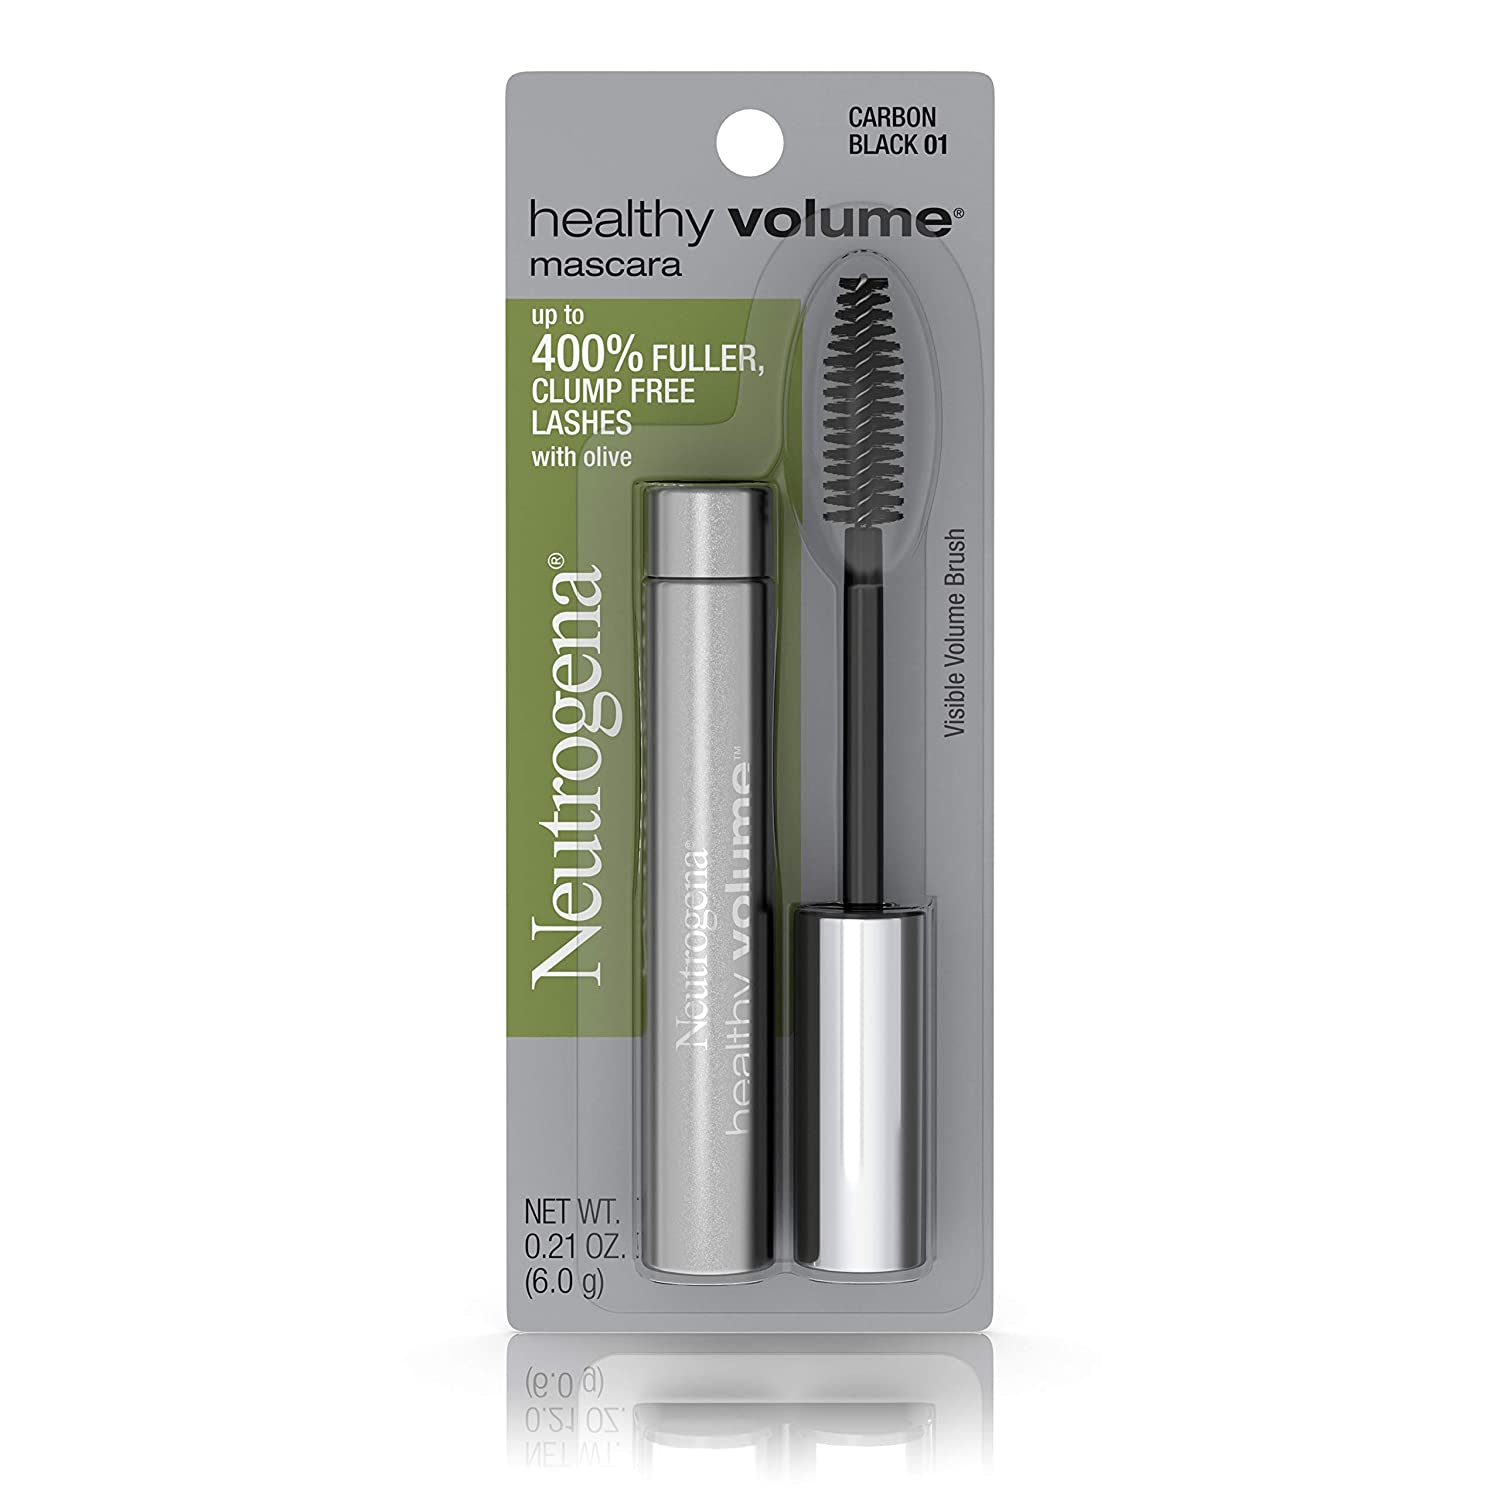 Neutrogena Healthy Volume Mascara, Carbon Black 01,.21 Oz.